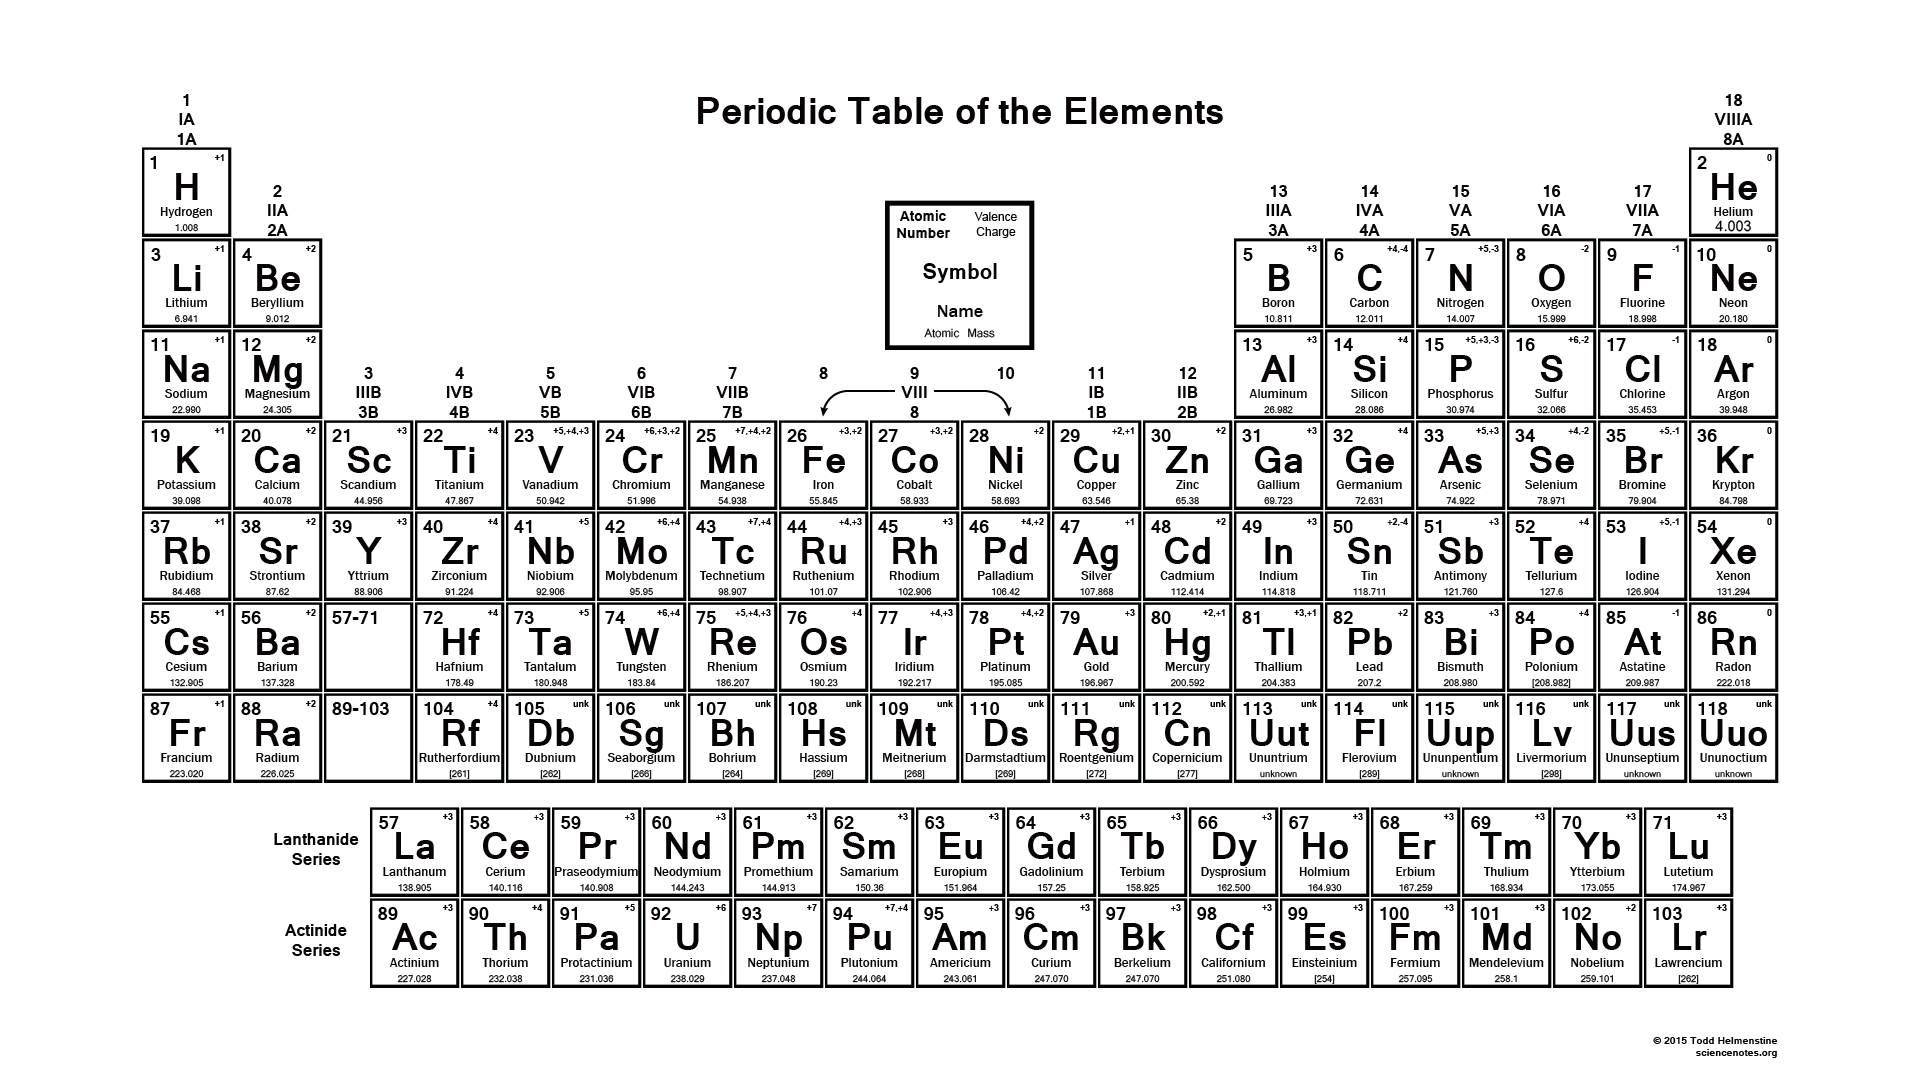 Black and White Periodic Table with Element Charges - 2015